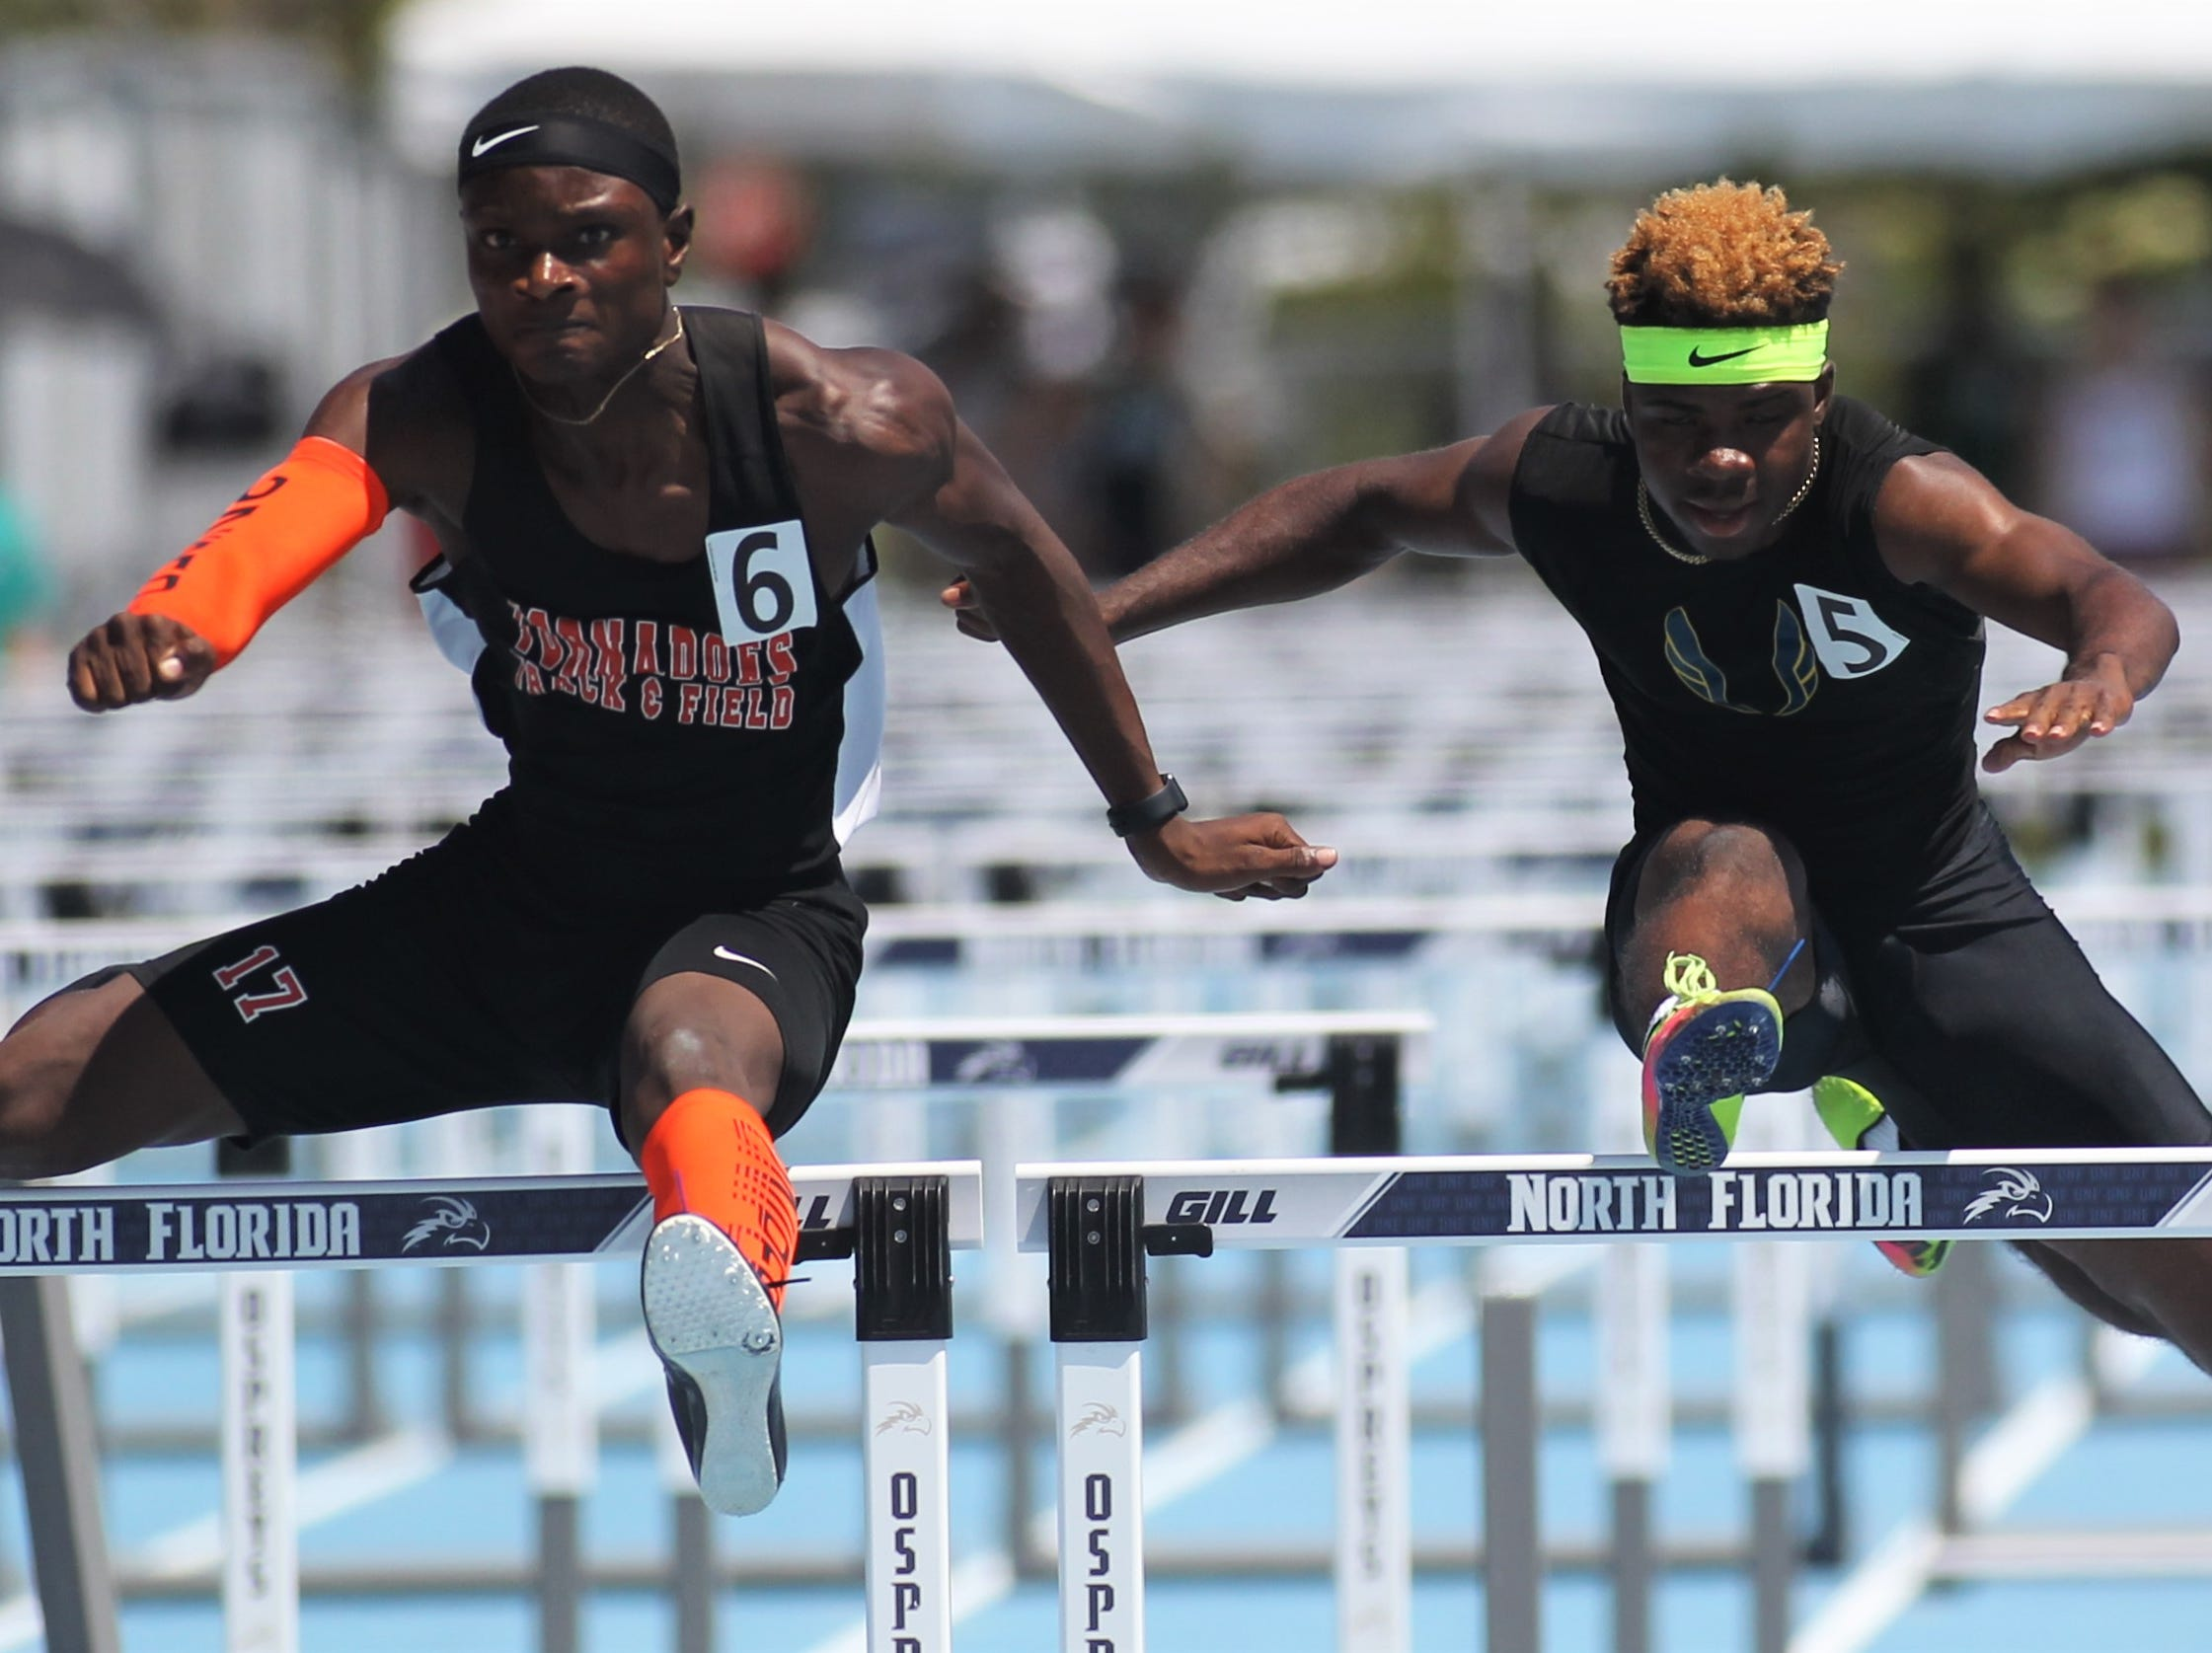 Rickards senior Jabari Bryant took silver in Class 2A 110m hurdles at the FHSAA Track and Field State Championships at UNF's Hodges Stadium in Jacksonville on May 4, 2019.